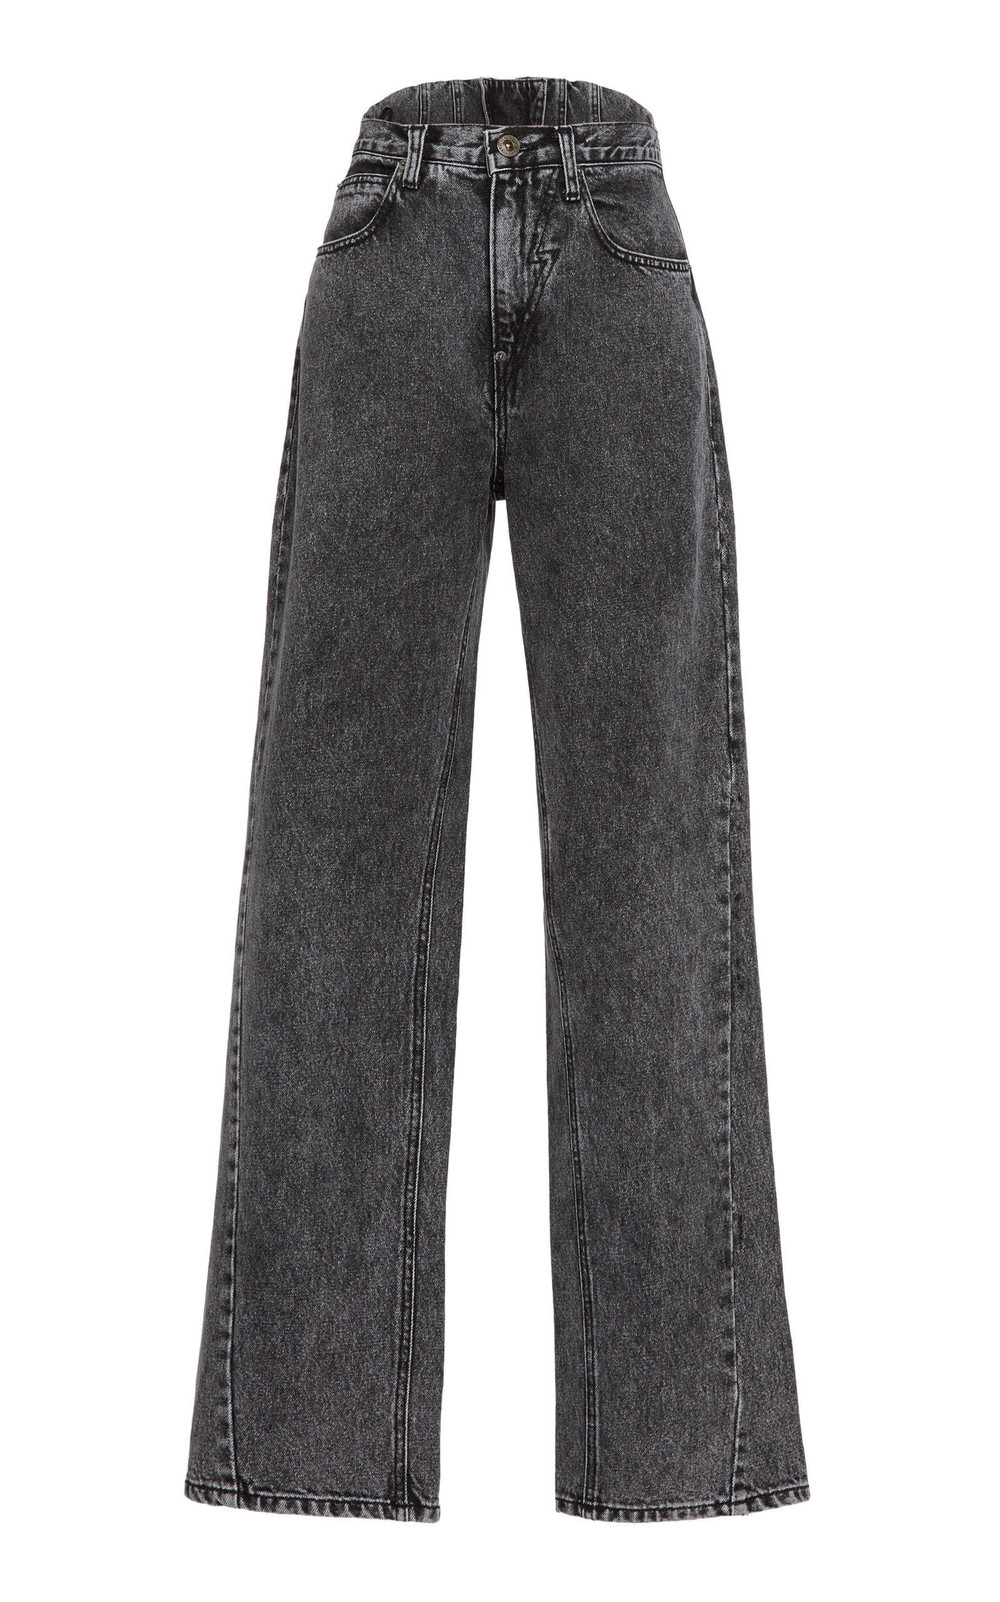 Pushbutton Low-Rise Wide-Leg Acid Wash Jeans in grey